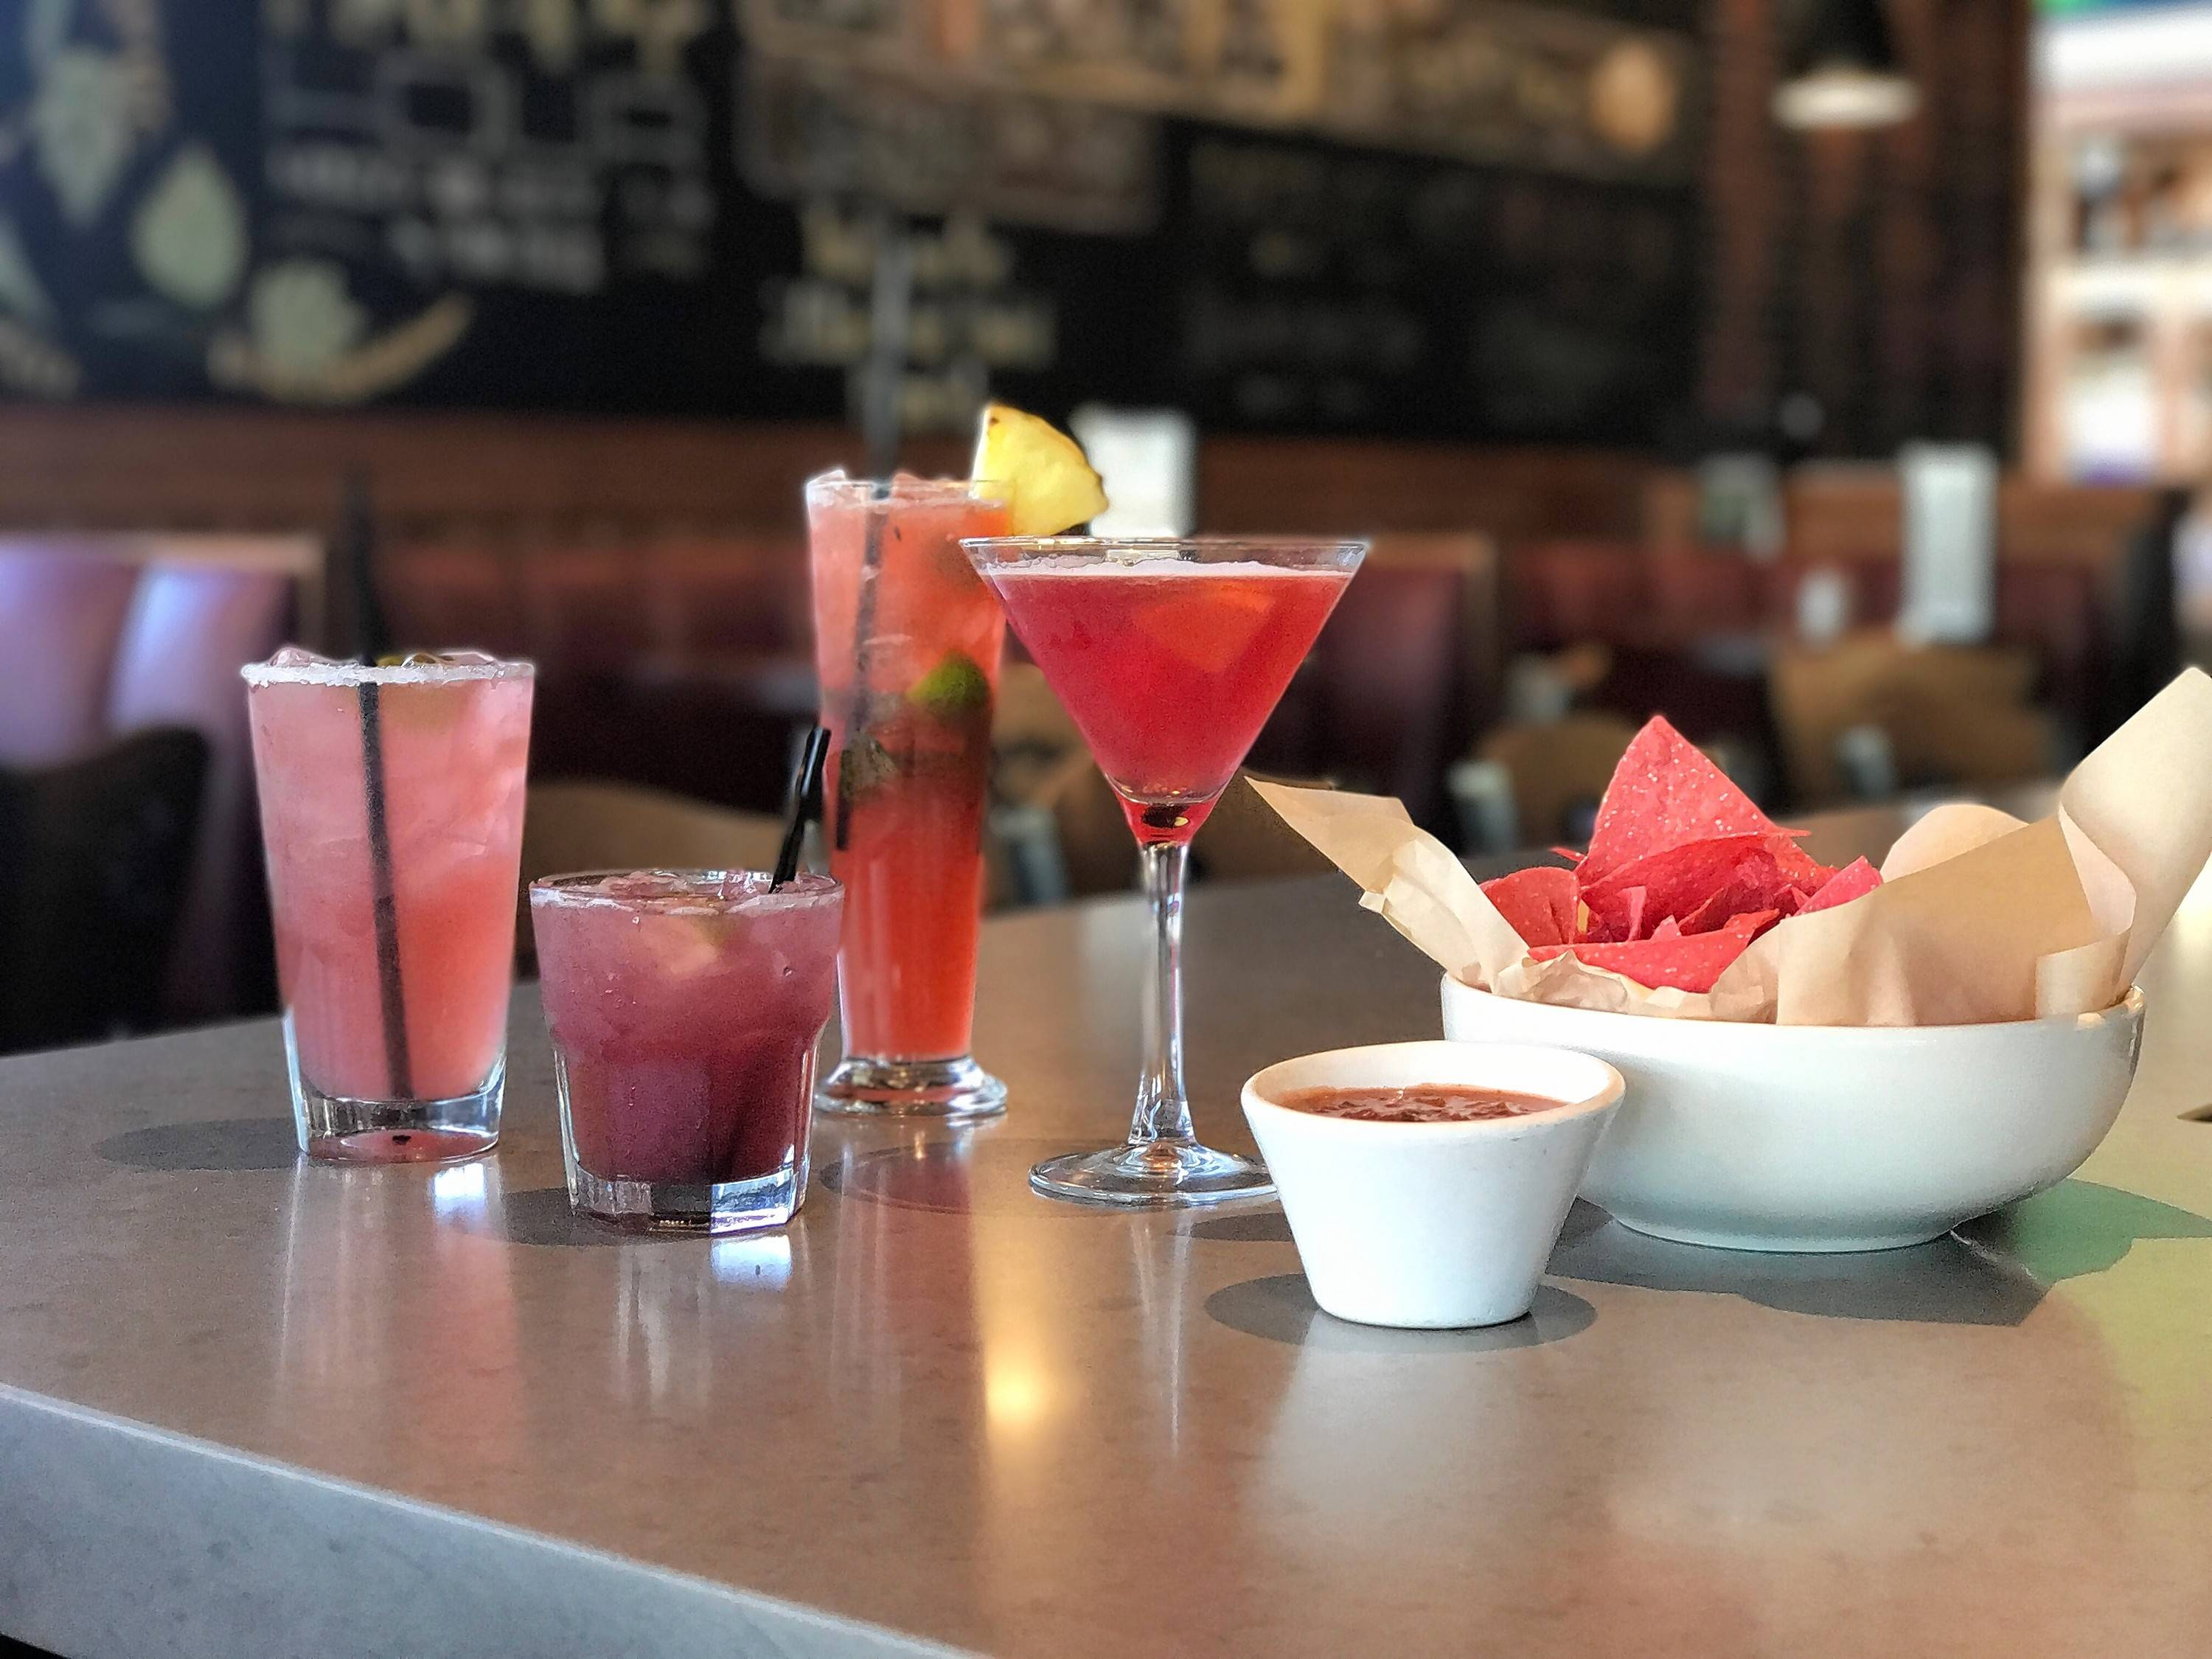 During October, one dollar from the sales of The RAM's el Jimador Black Opal Margarita, left, the Absolut Lime Pink Mule, the Bacardi Pink Pineapple Mojito, the Pink Rose Martini and the pink chips and salsa appetizer will go to support local American Cancer Society programs.